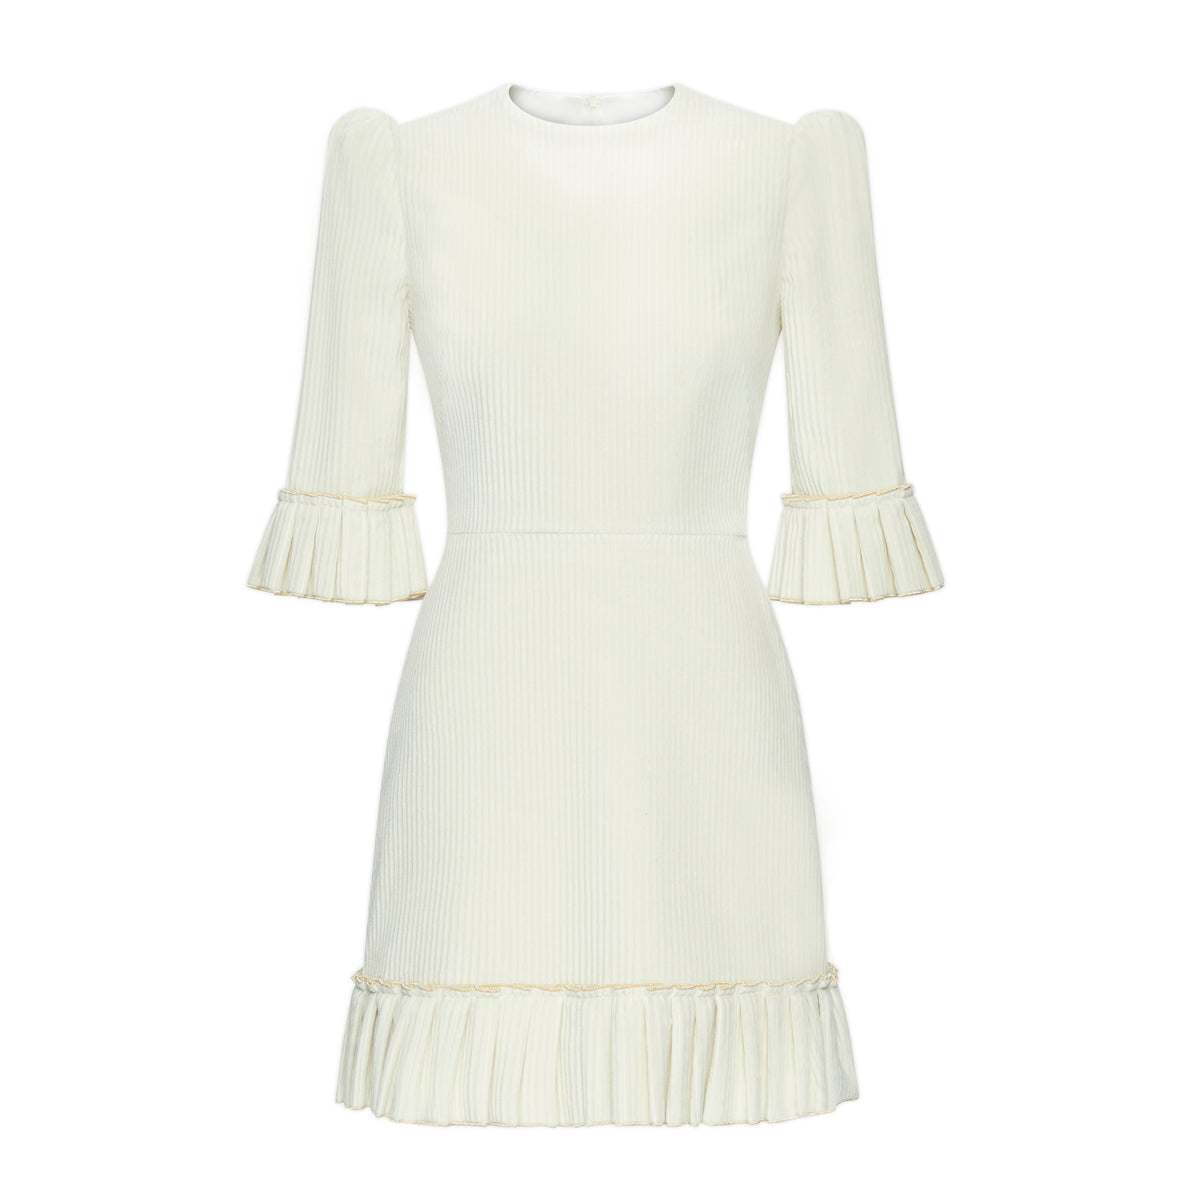 THE IVORY JUMBO CORDUROY MINI FESTIVAL DRESS